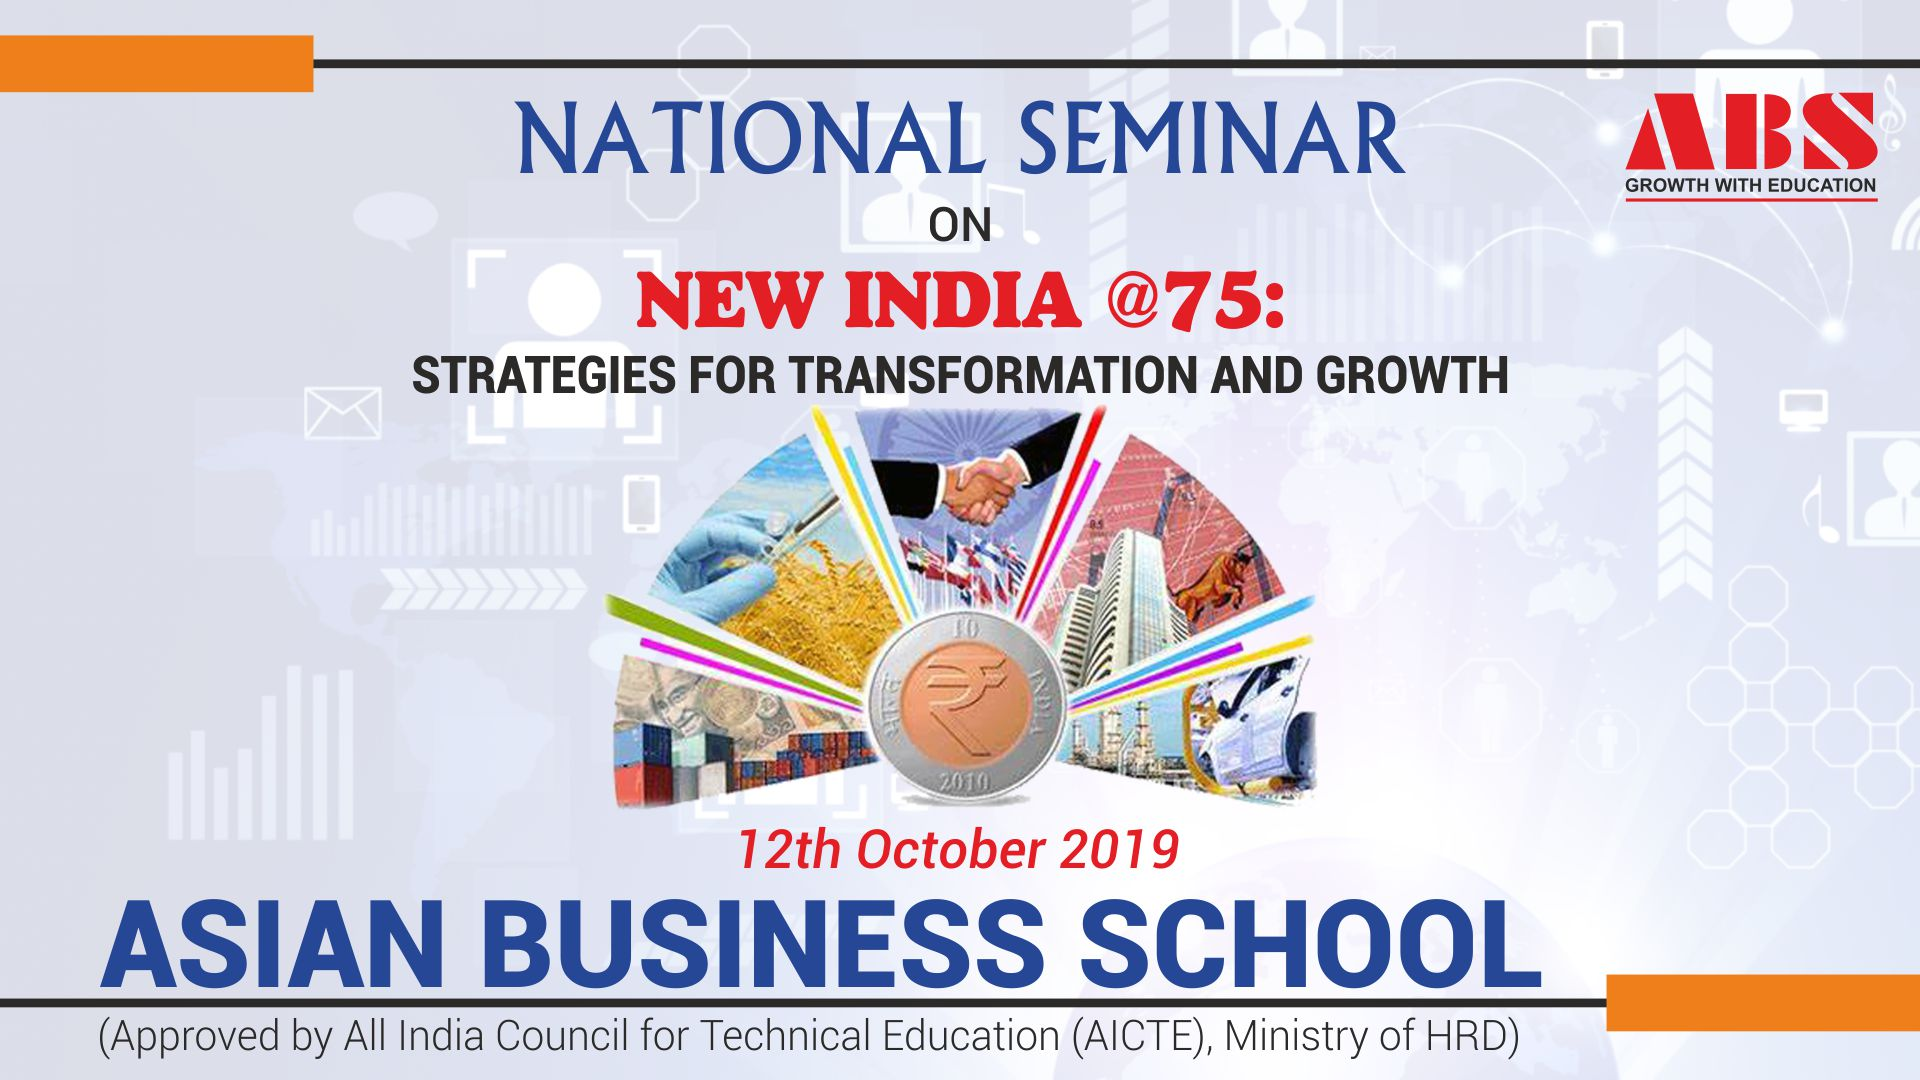 ABS NATIONAL SEMINAR ON NEW INDIA @75, STRATEGIES FOR TRANSFORMATION AND GROWTH